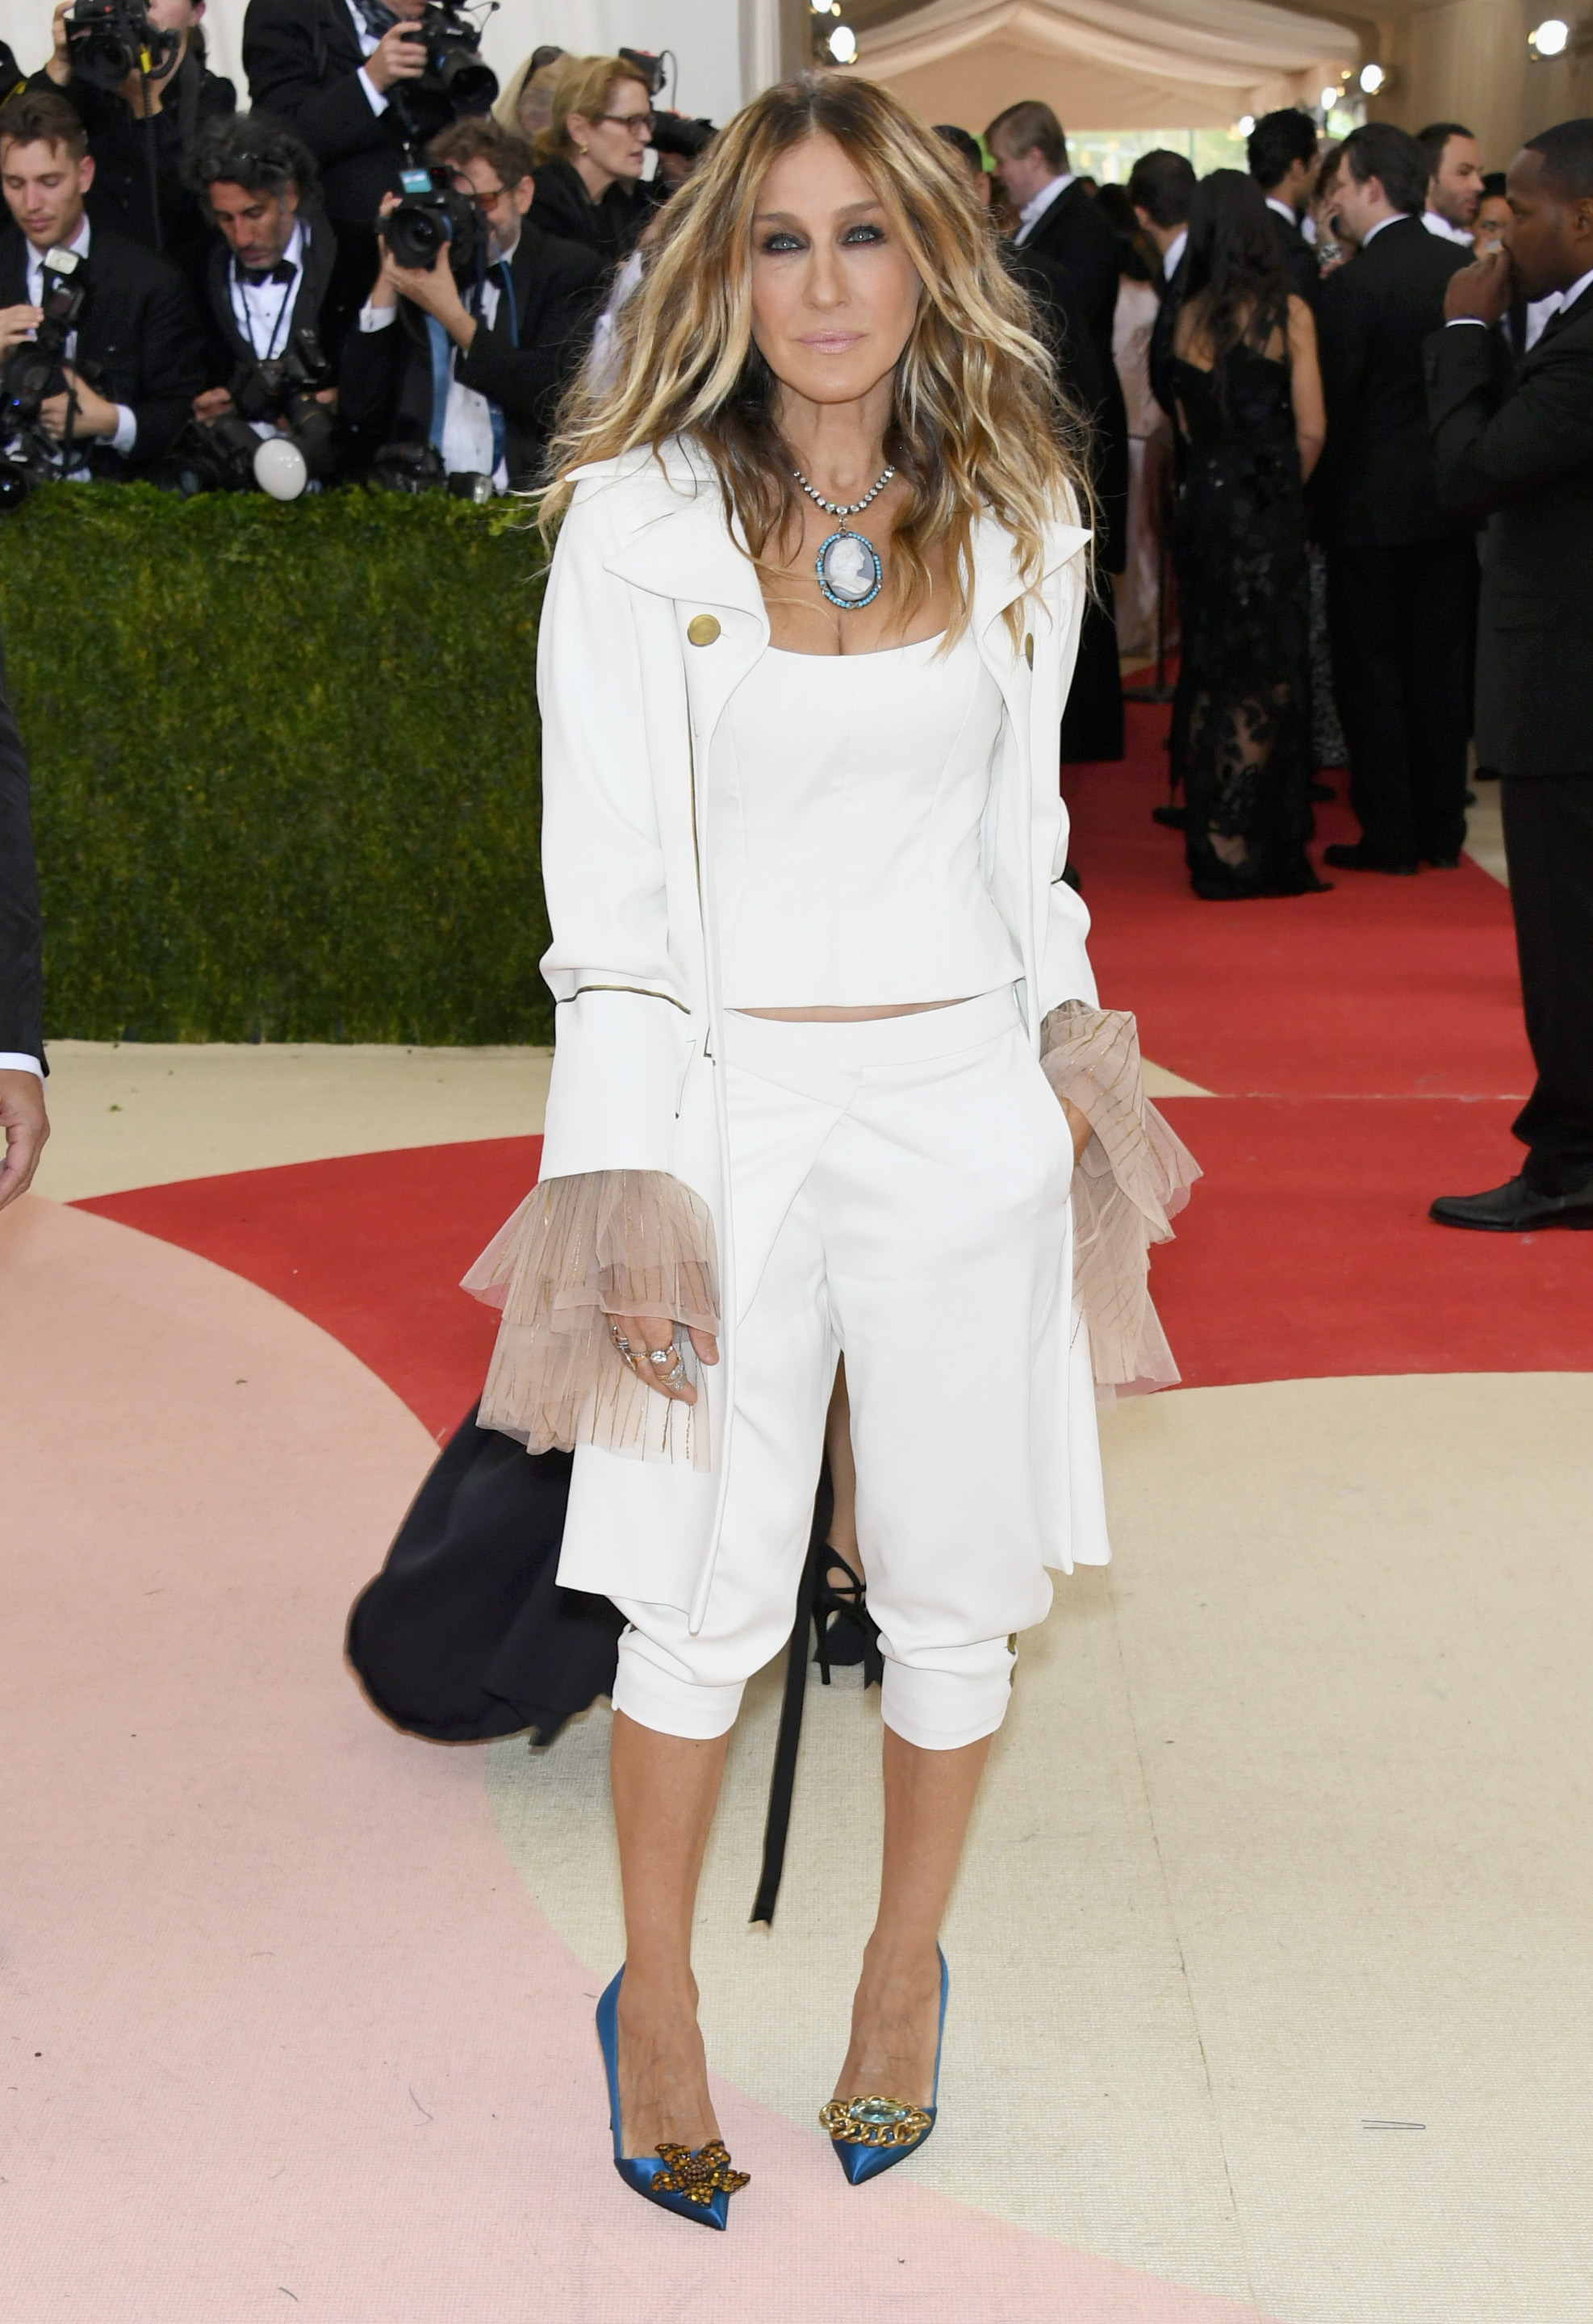 Sarah Jessica Parker slams blooger of Met Gala crtique